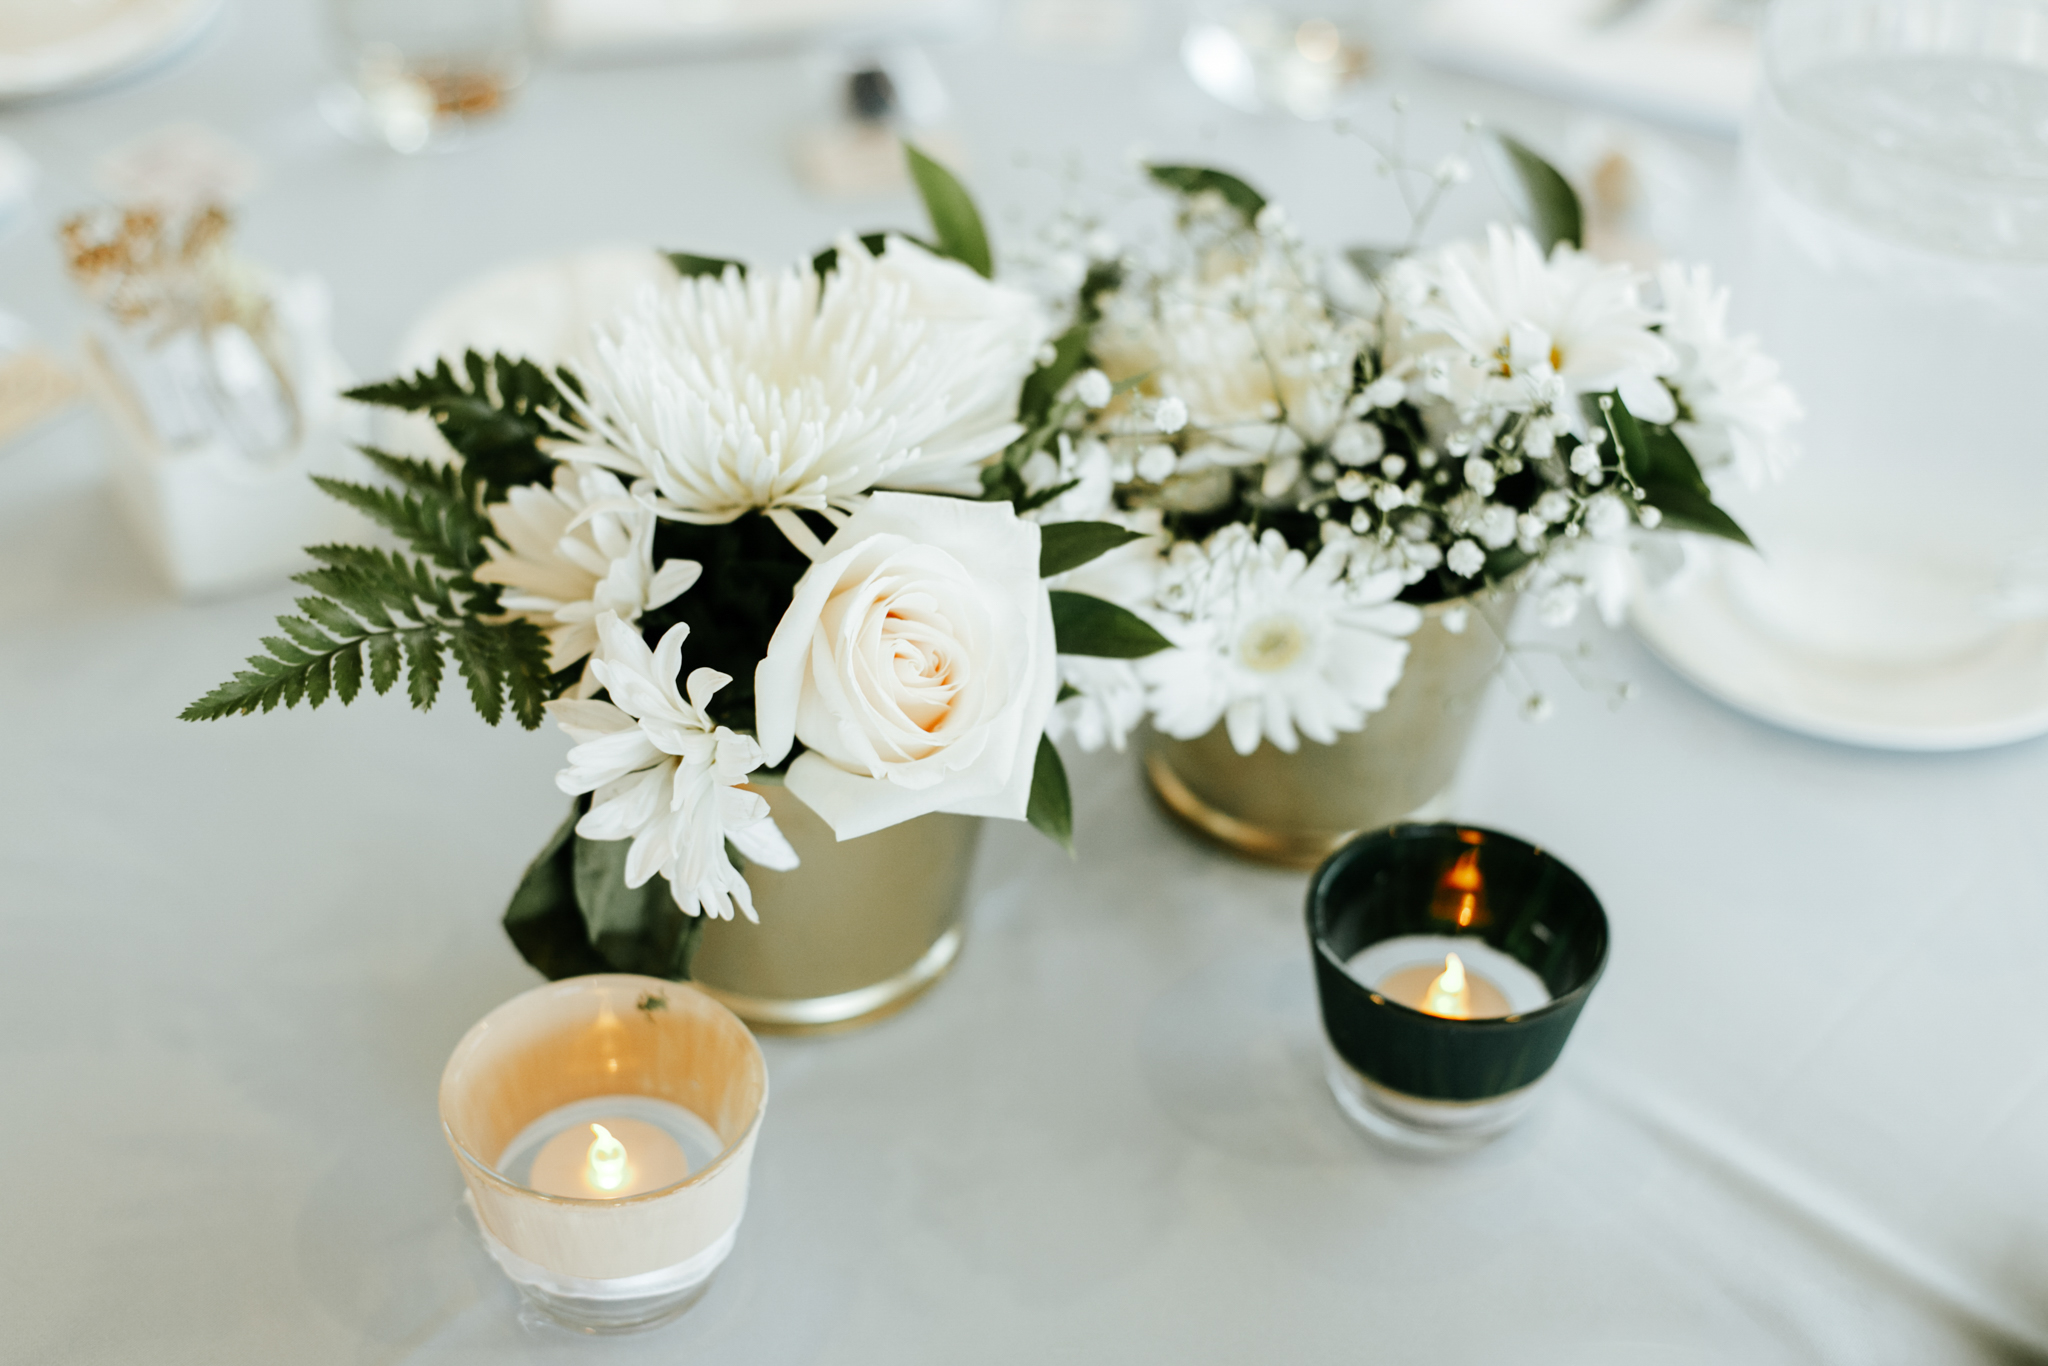 lethbridge-wedding-photographer-love-and-be-loved-photography-trent-danielle-galt-reception-picture-image-photo-161.jpg